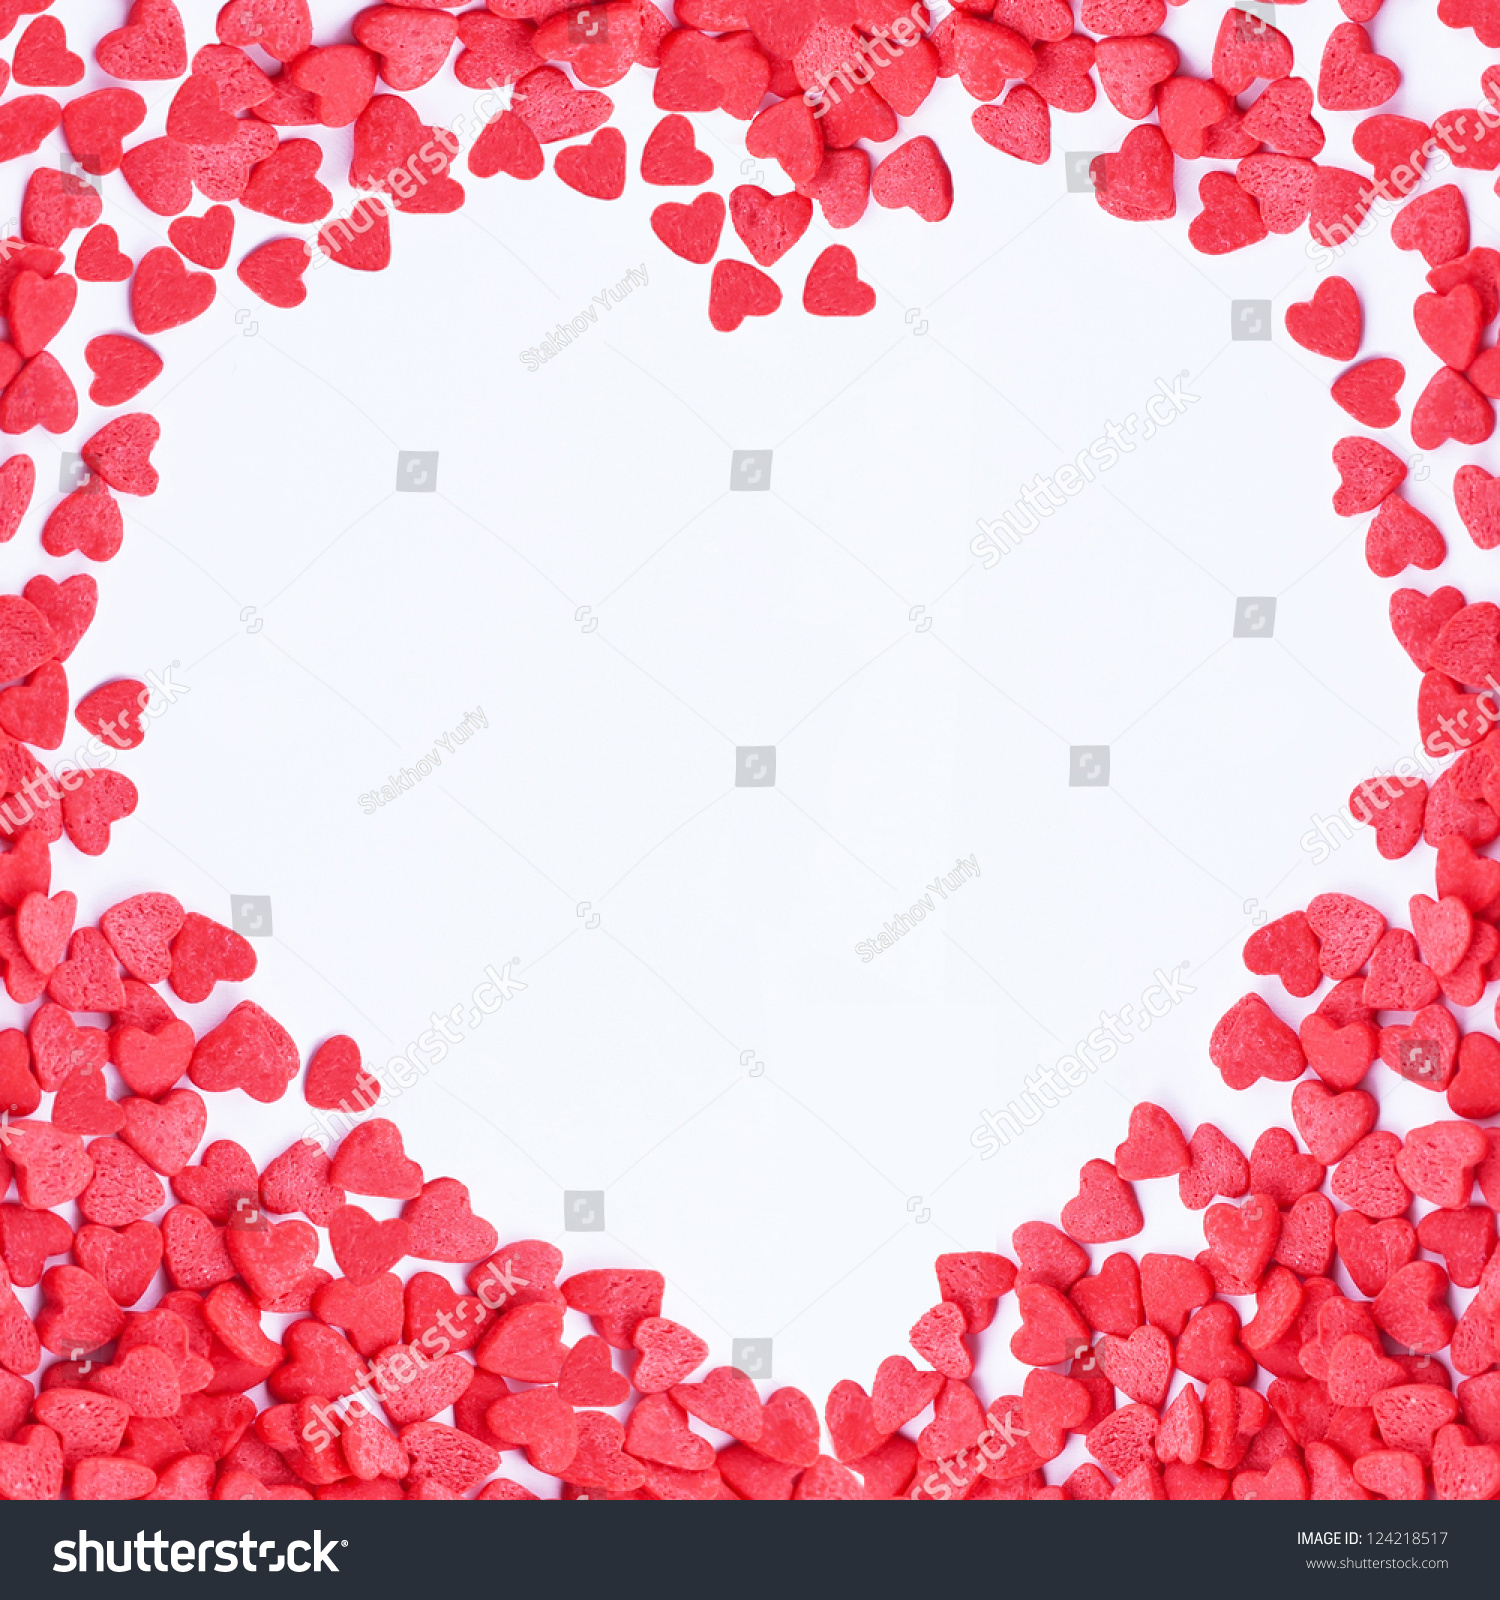 heart frame made of small red hearts on the white background